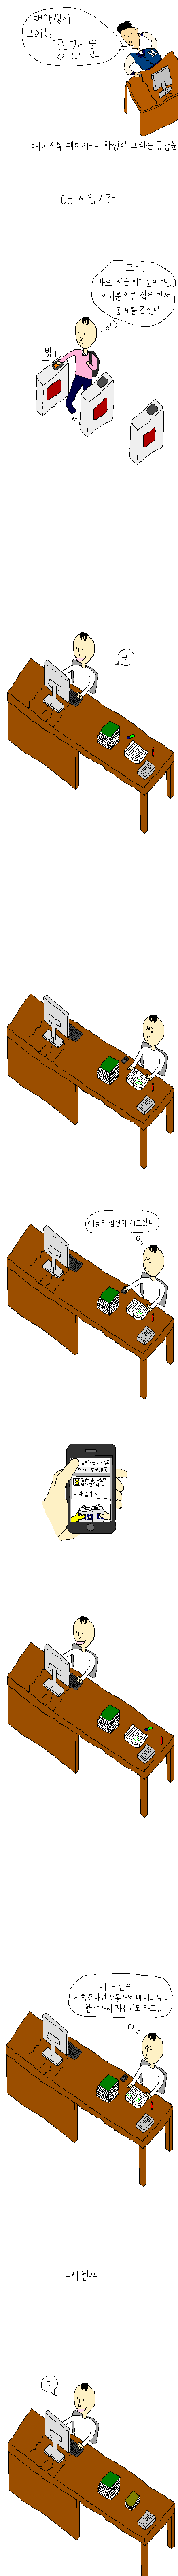 20150421-03--.png